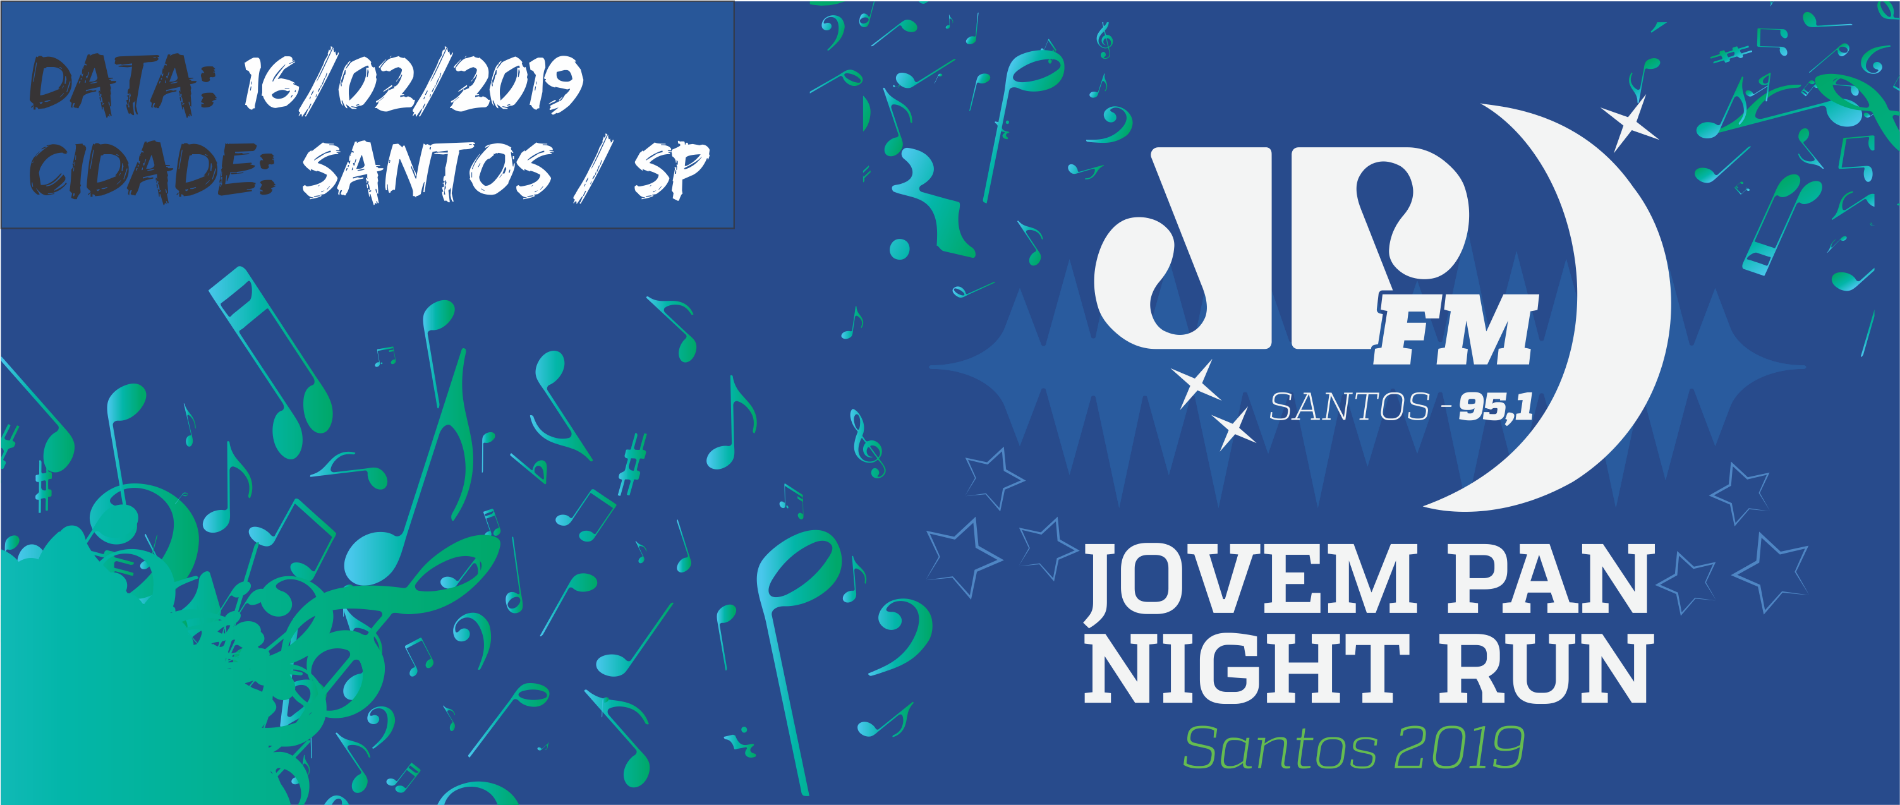 JOVEM PAN NIGHT RUN SANTOS 2019